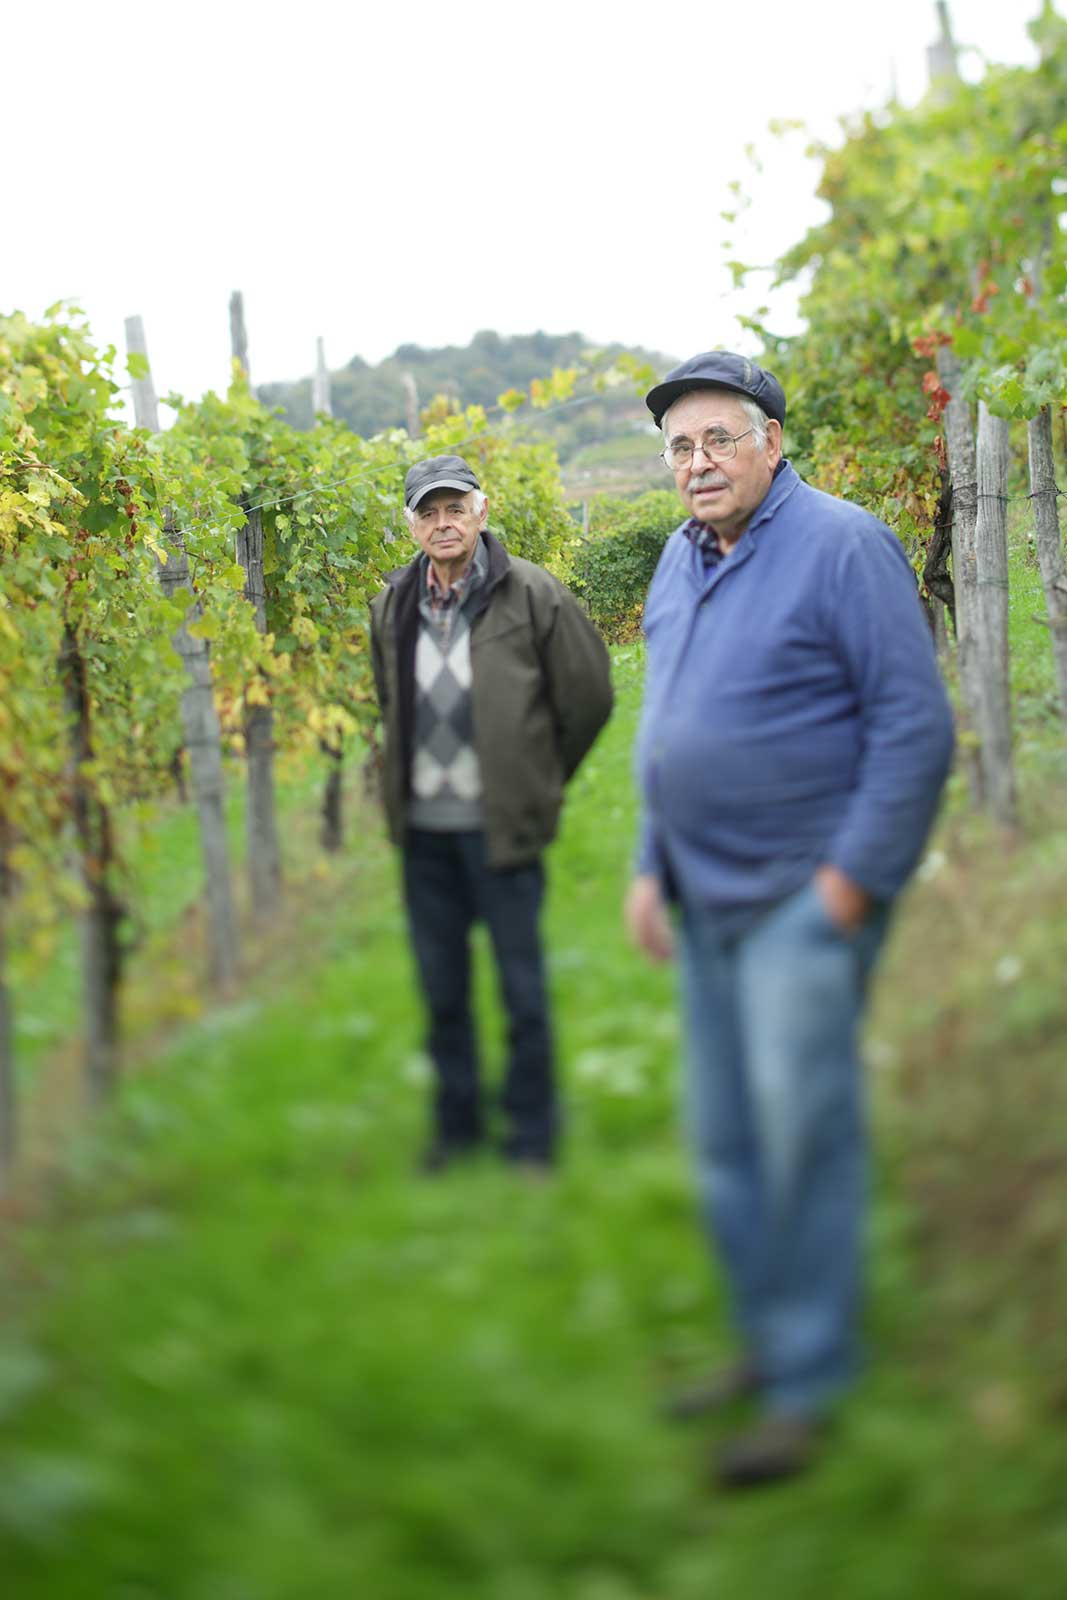 Giancarlo (left) and Marco Petterino (right) among their vines in Gattinara. ©Clay McLachlan/claymclachlan.com for Polaner Selections